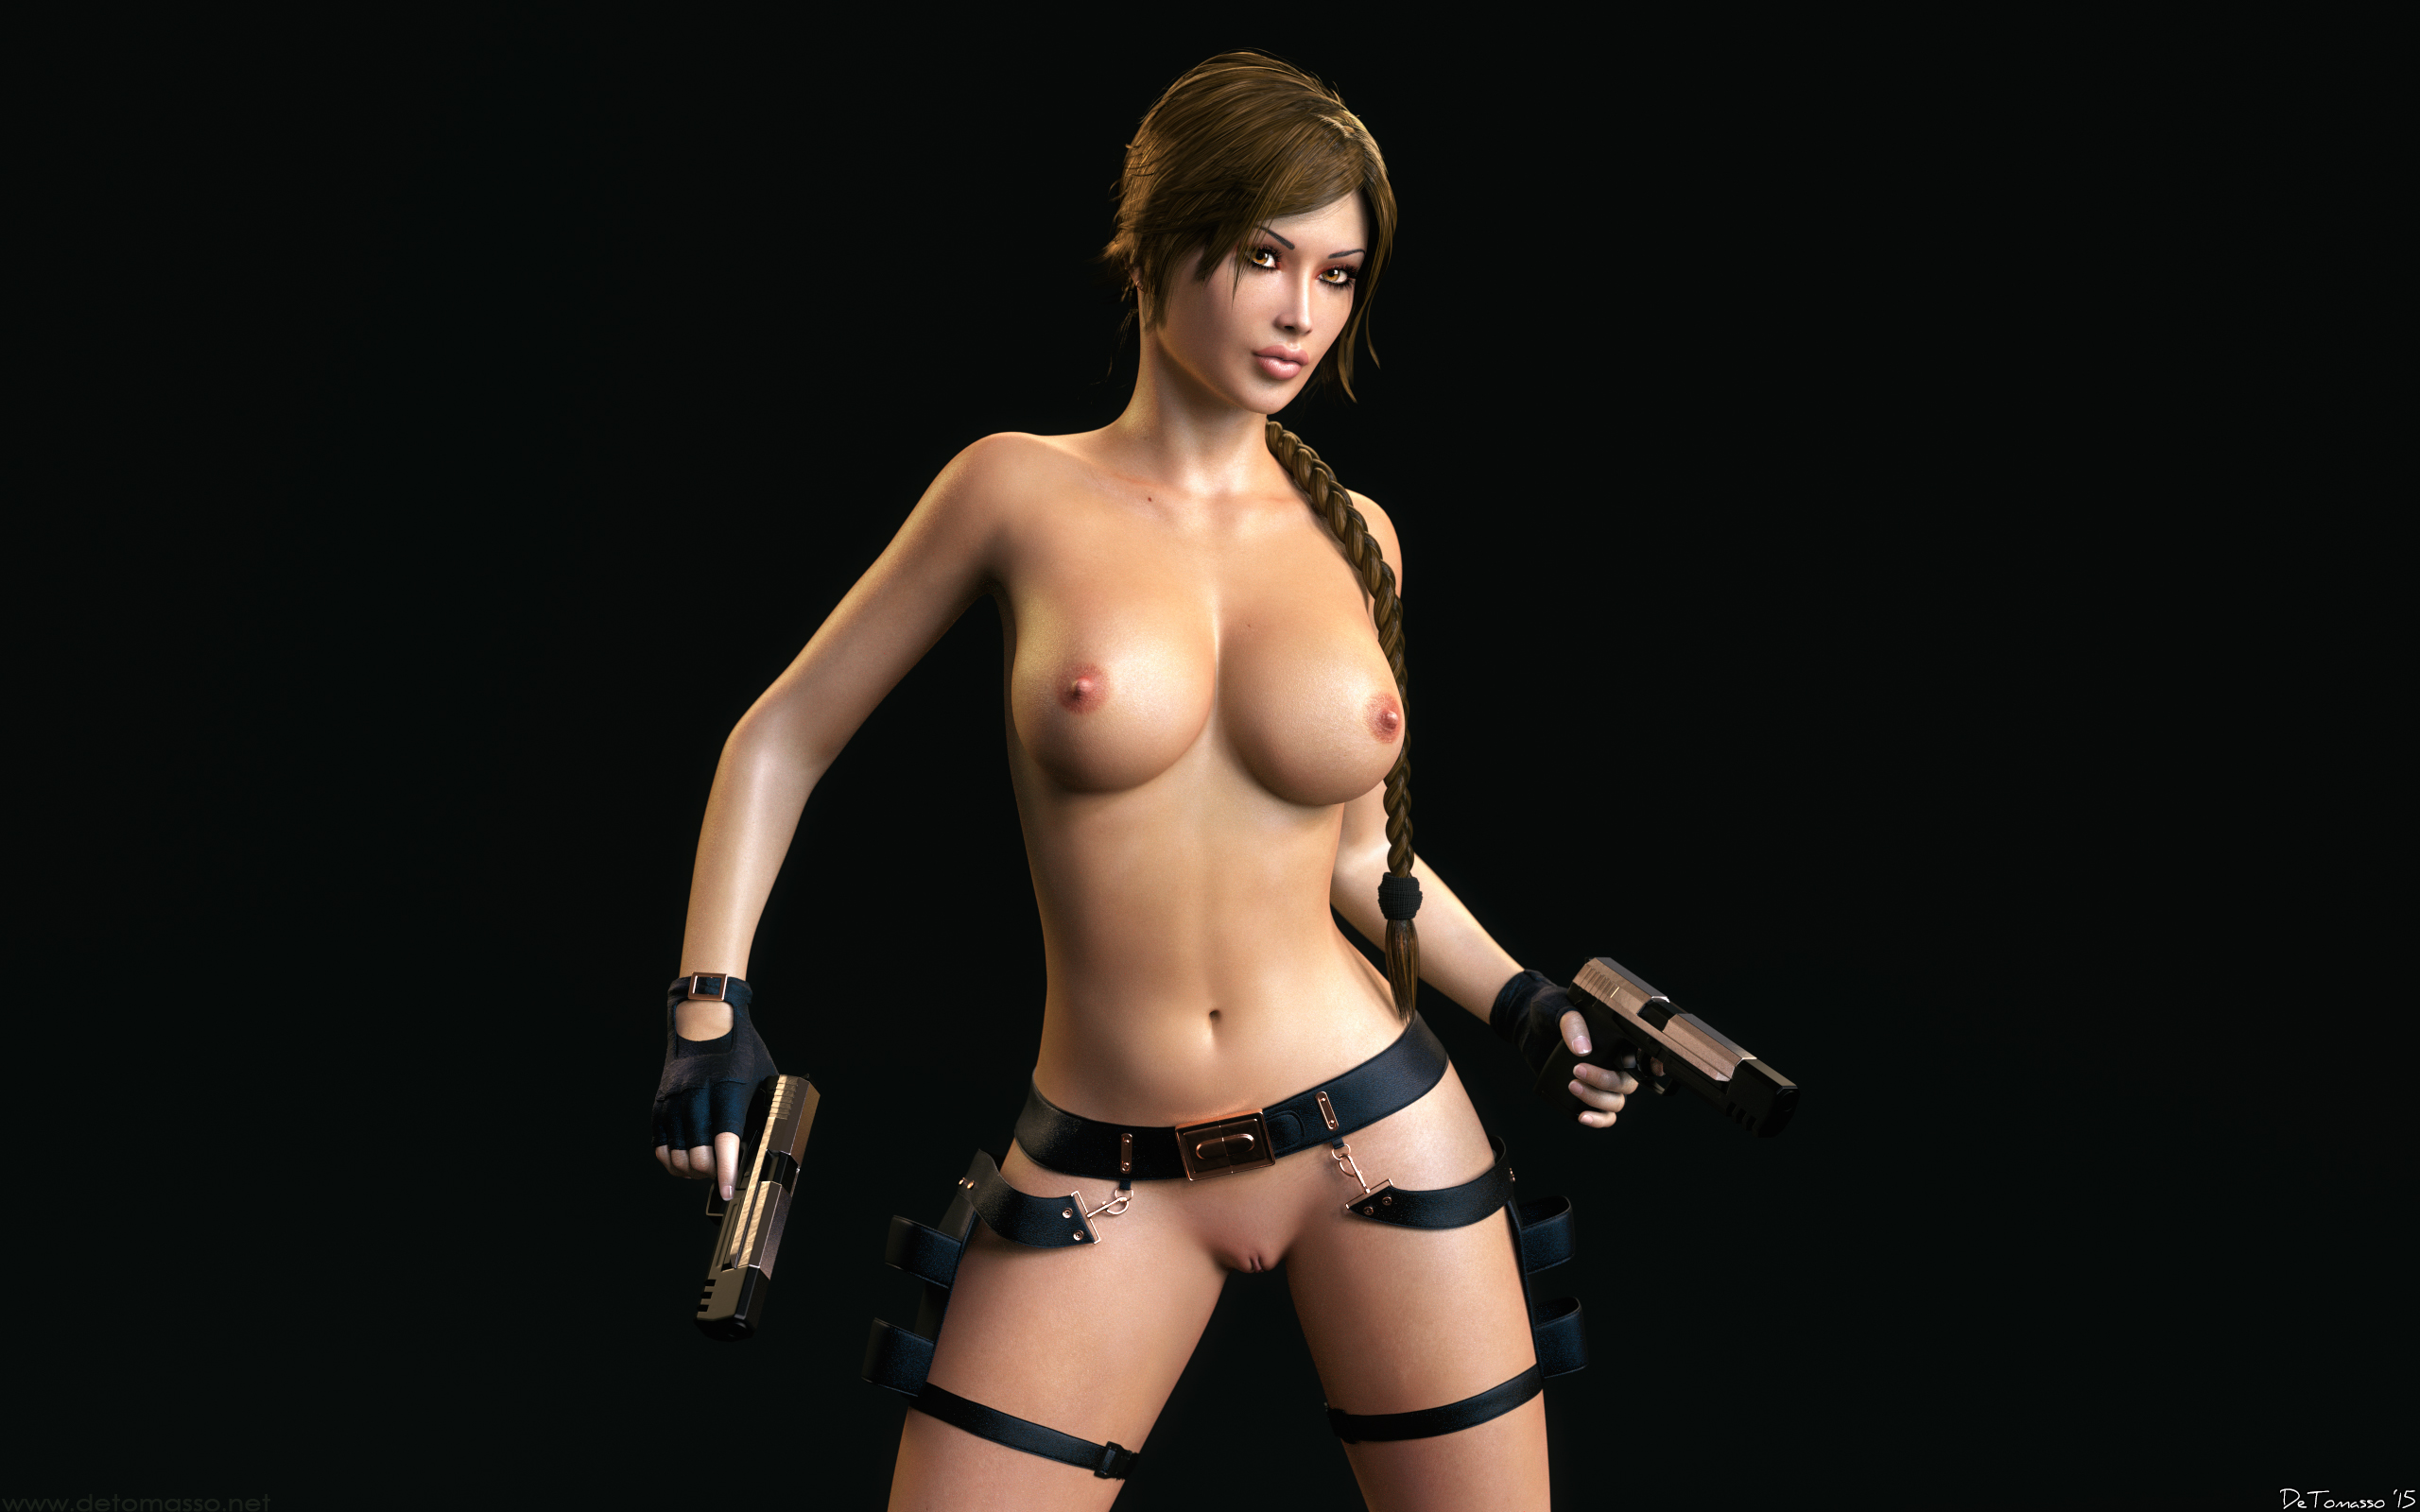 Rayne x lara croft nude xxx photo